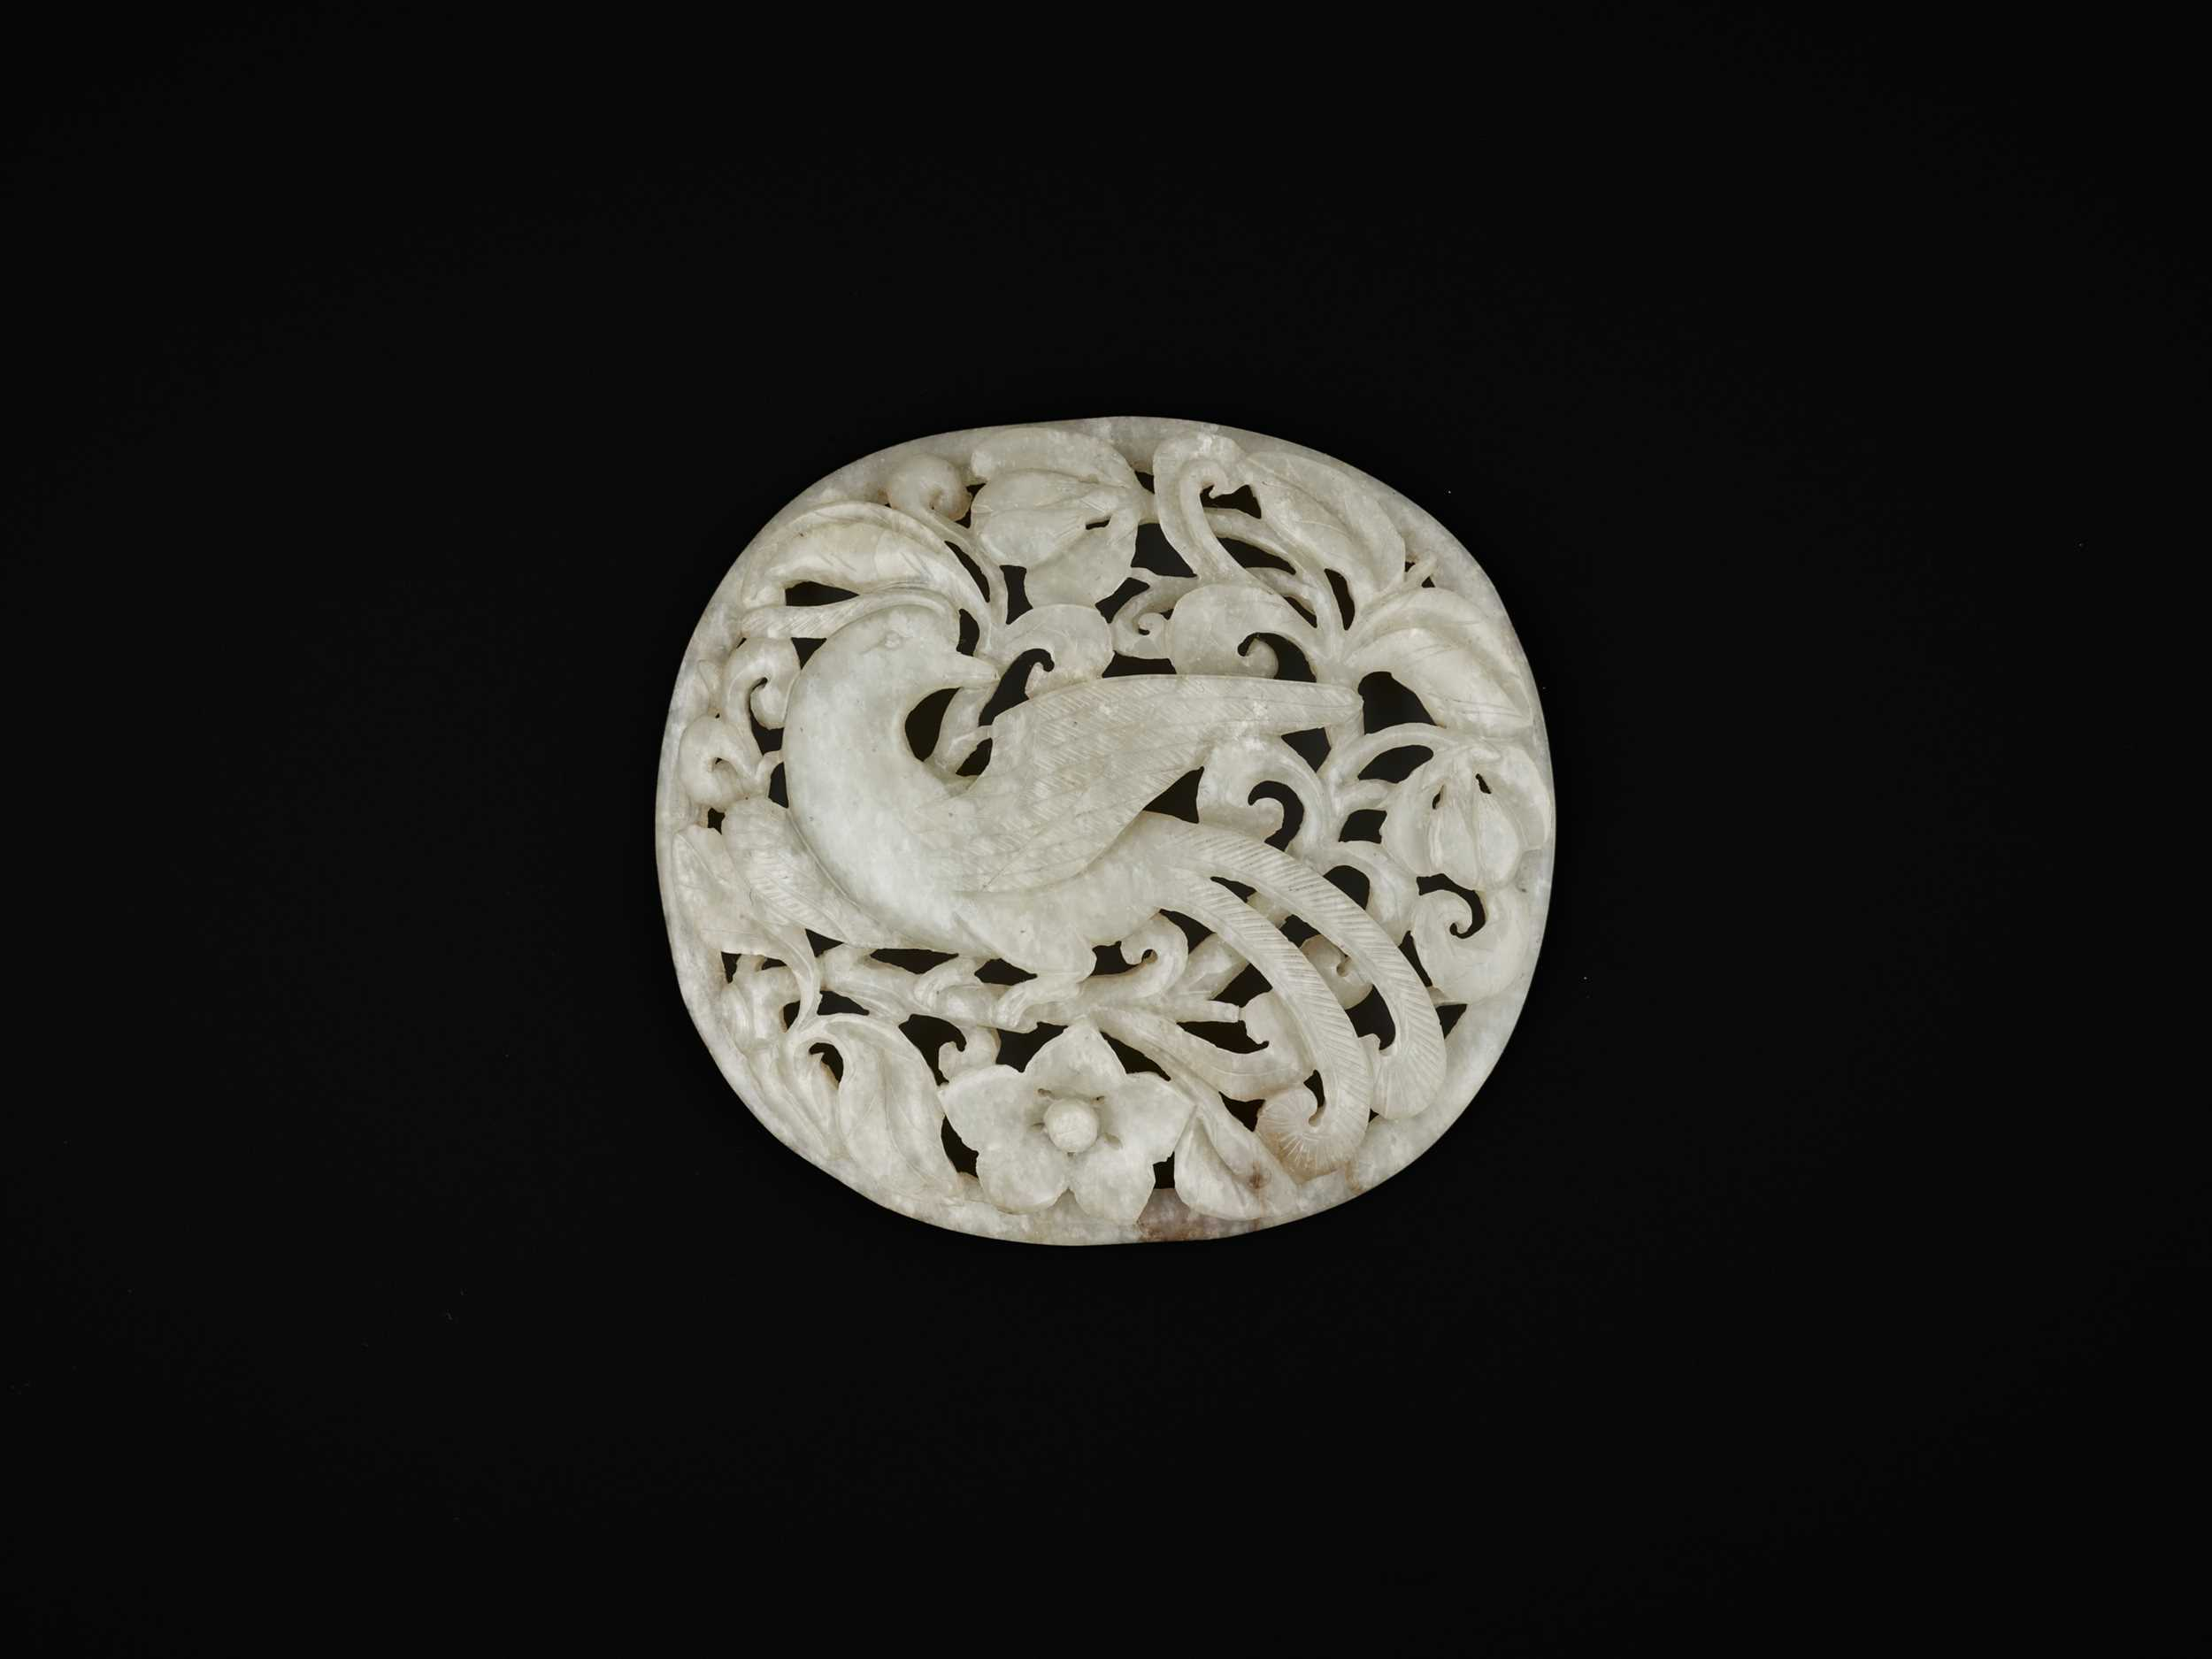 Lot 91 - A PALE CELADON JADE RETICULATED 'PHEASANT' PLAQUE, MING DYNASTY